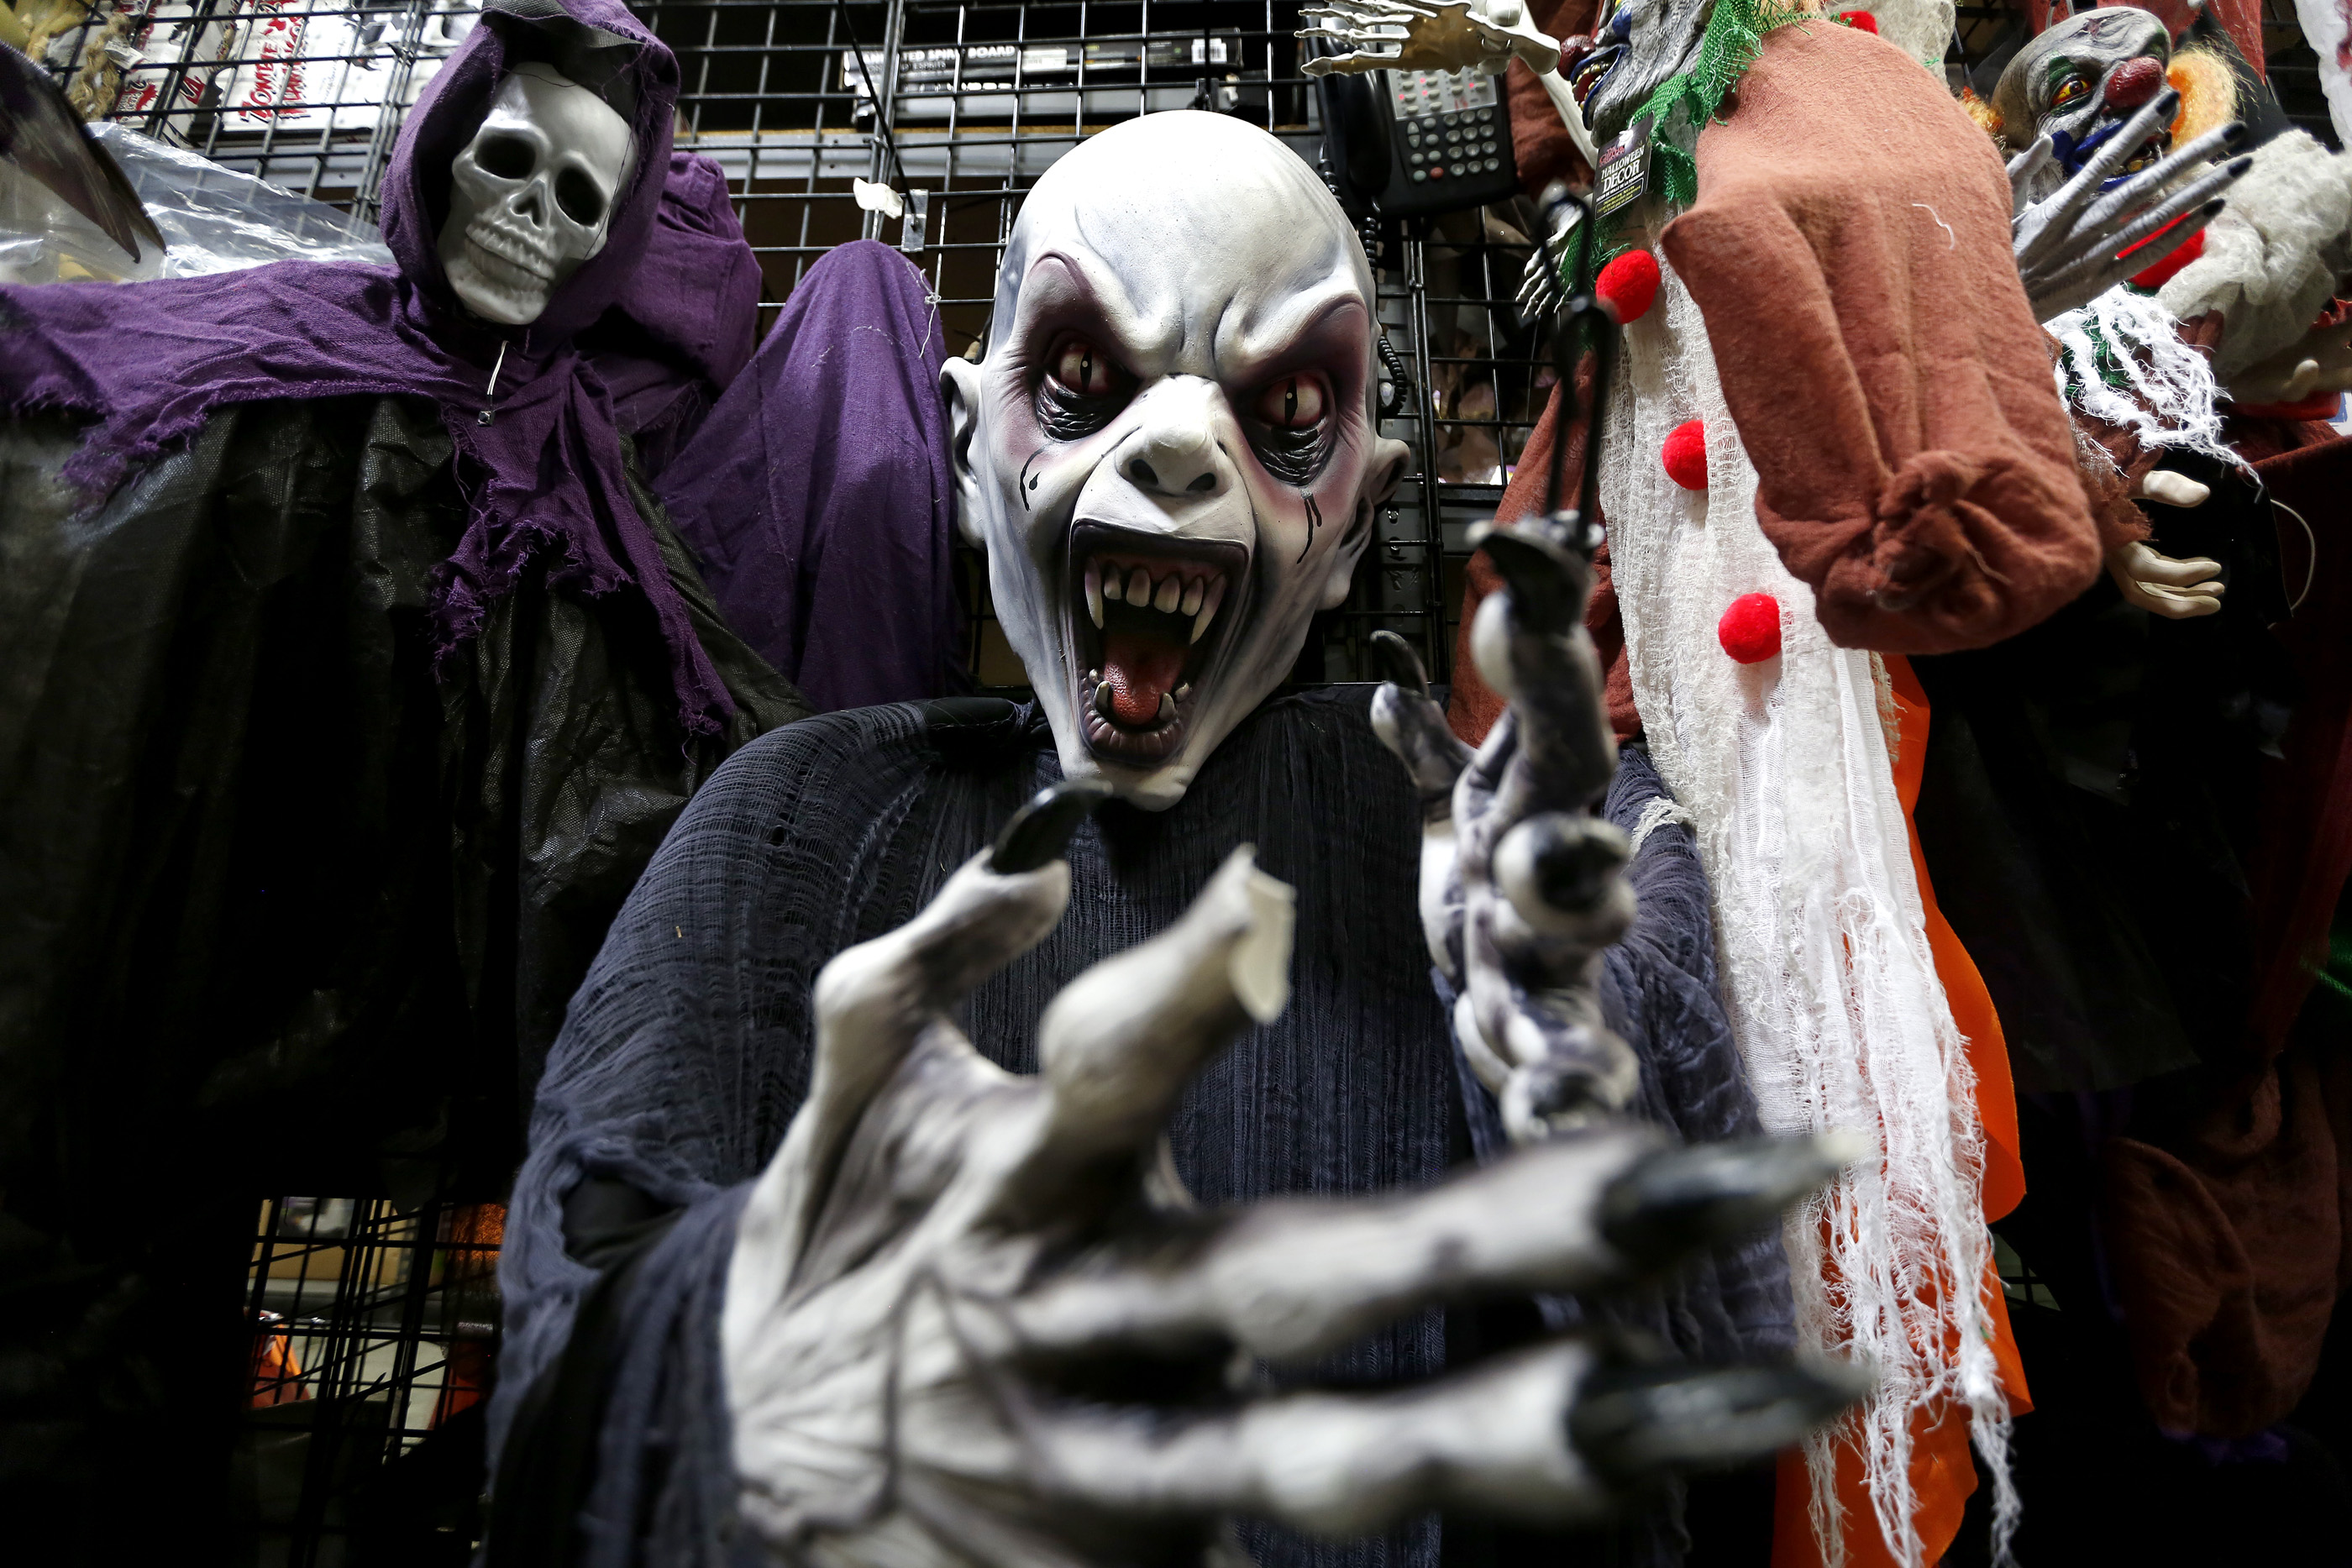 10/26/16 /LOS ANGELES/Halloween masks and decorations are seen for sale at the Halloween Club store in Montebello. (Photo Aurelia Ventura/ La Opinion)